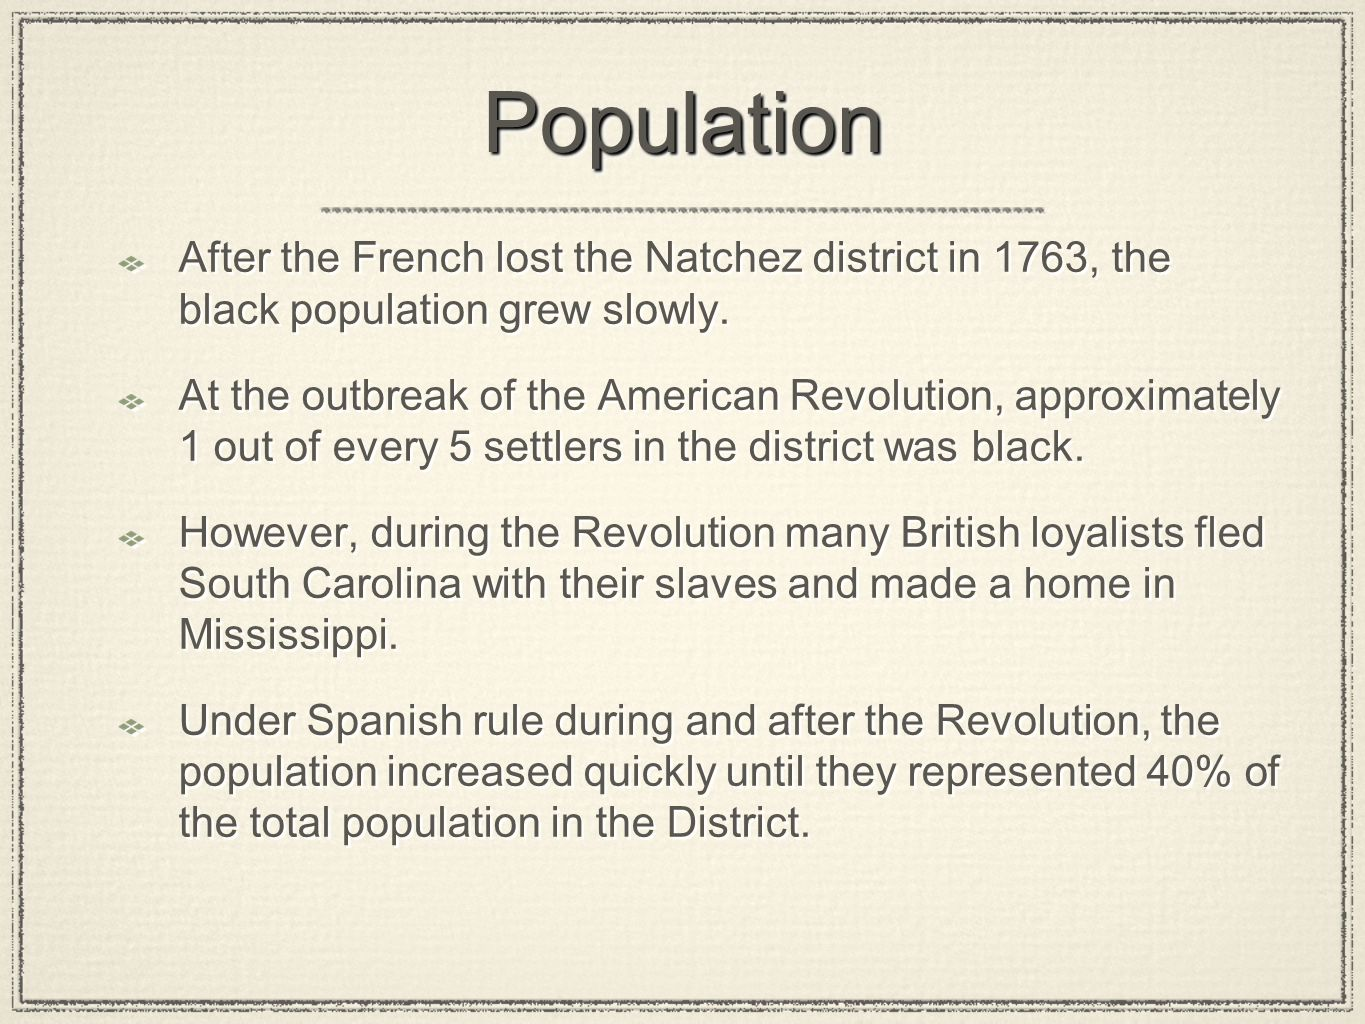 PopulationPopulation After the French lost the Natchez district in 1763, the black population grew slowly. At the outbreak of the American Revolution,